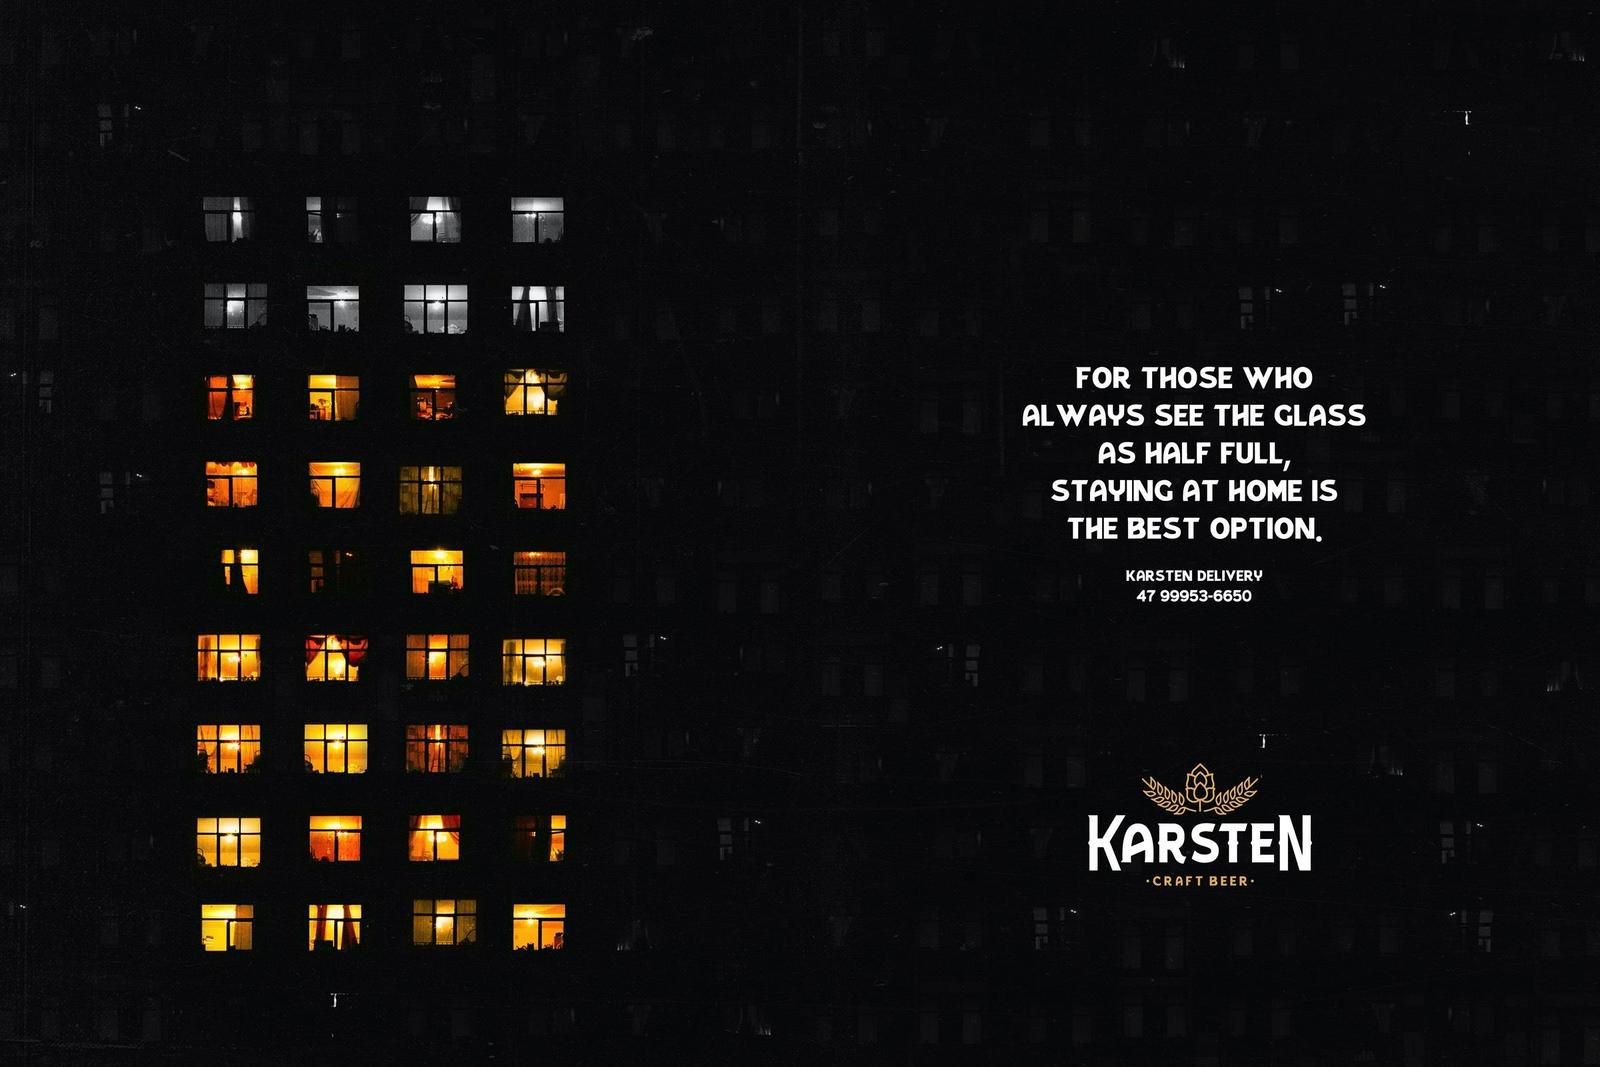 "Karsten Brewery : ""For those who always see the glass as half full, staying at home is the best option. Karsten Delivery"" (bières) I Agence : Woop, Jaraguá do Sul, Brésil (avril 2020)"